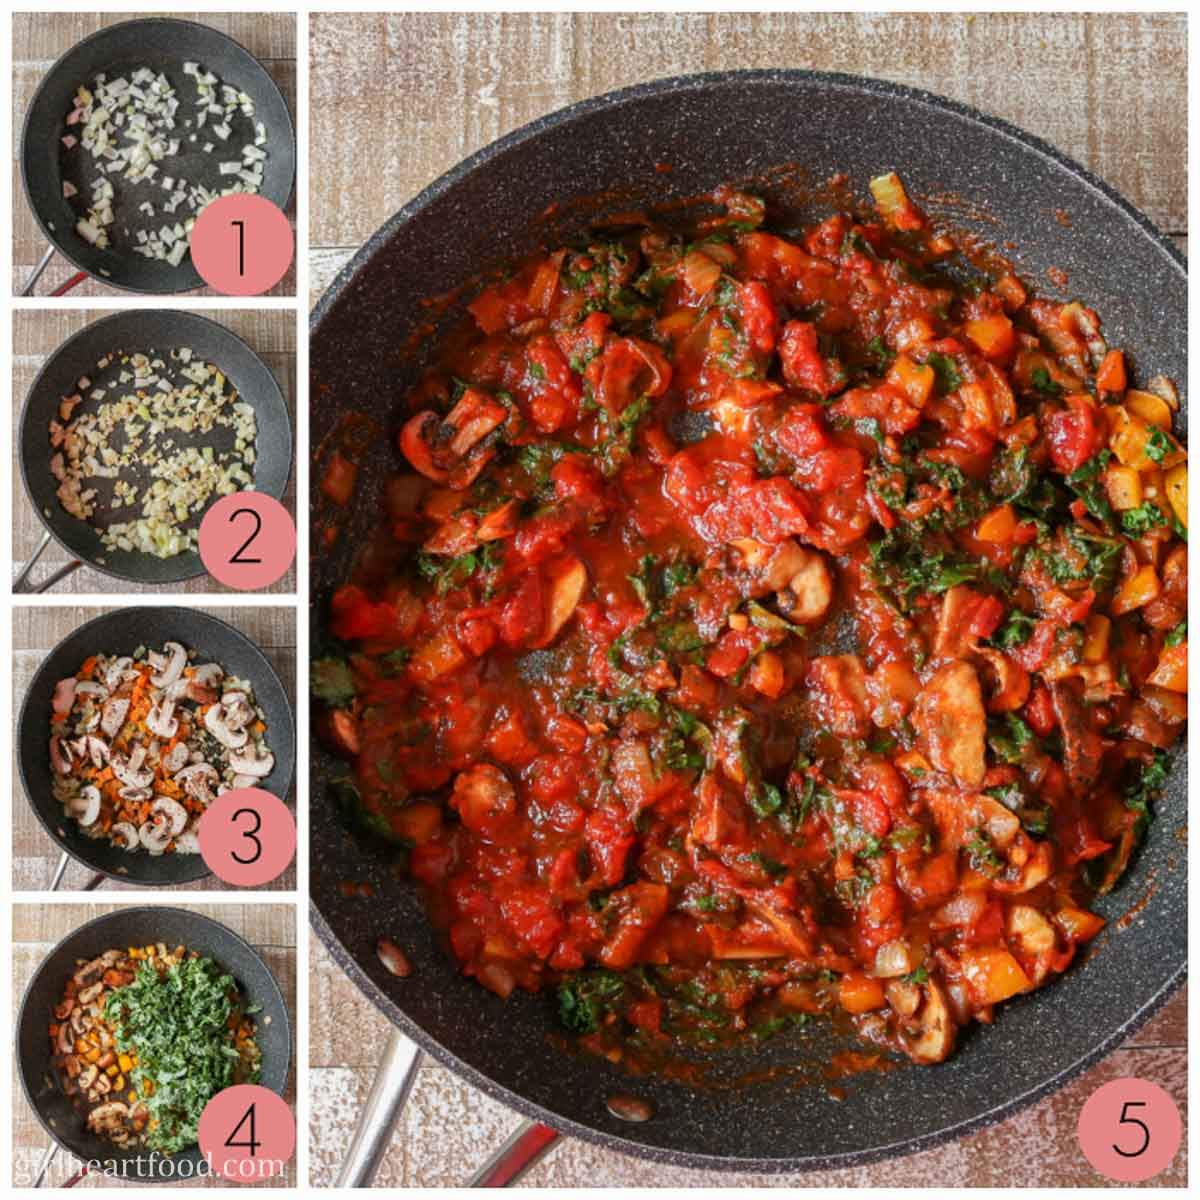 Collage of steps to make a veggie and tomato sauce filling.